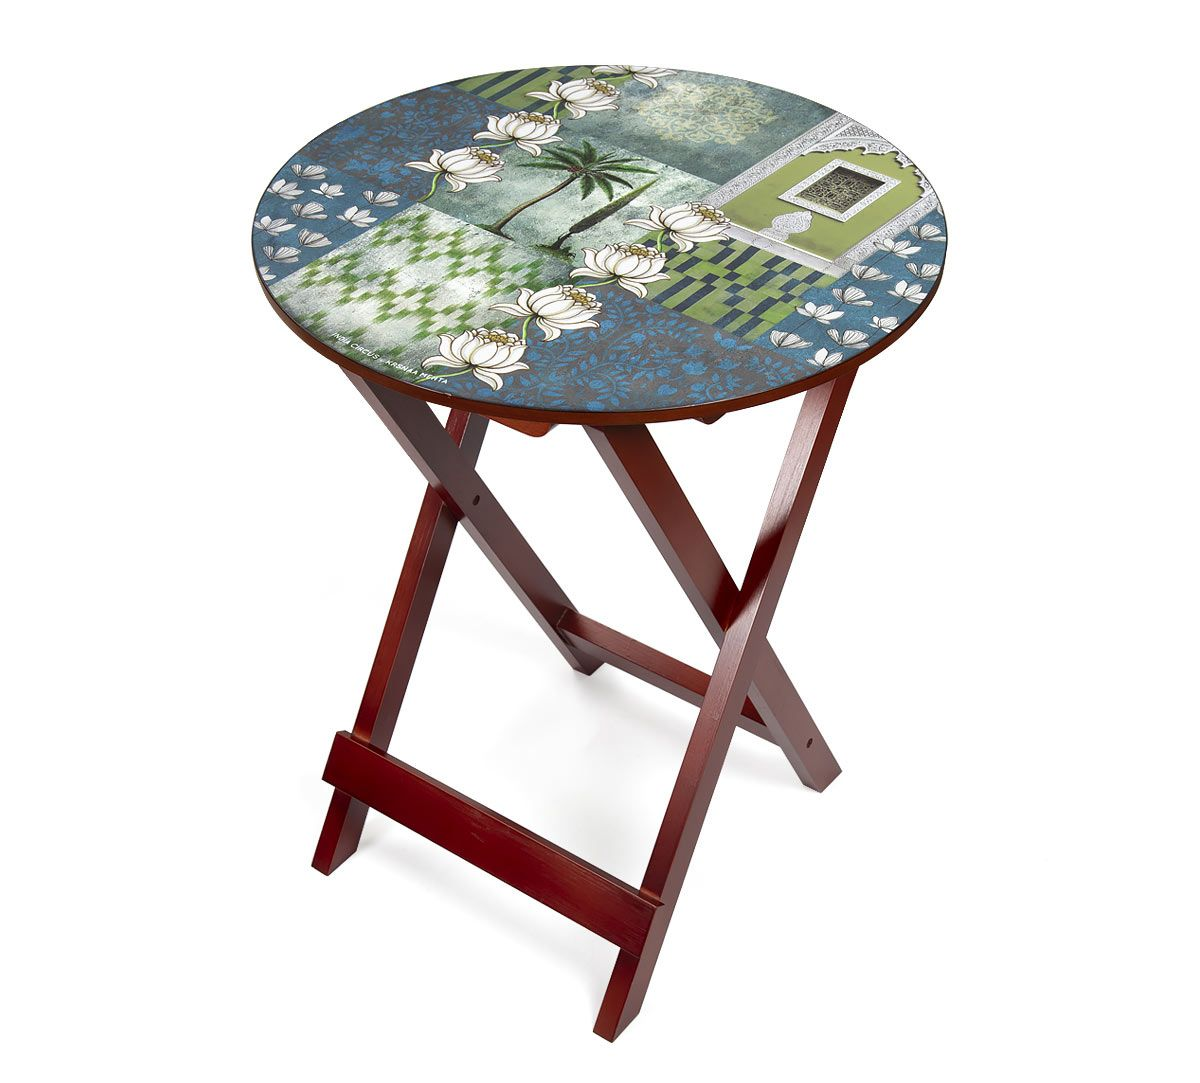 India Circus Teal Tiled Lotus Extravaganza Round Side Table